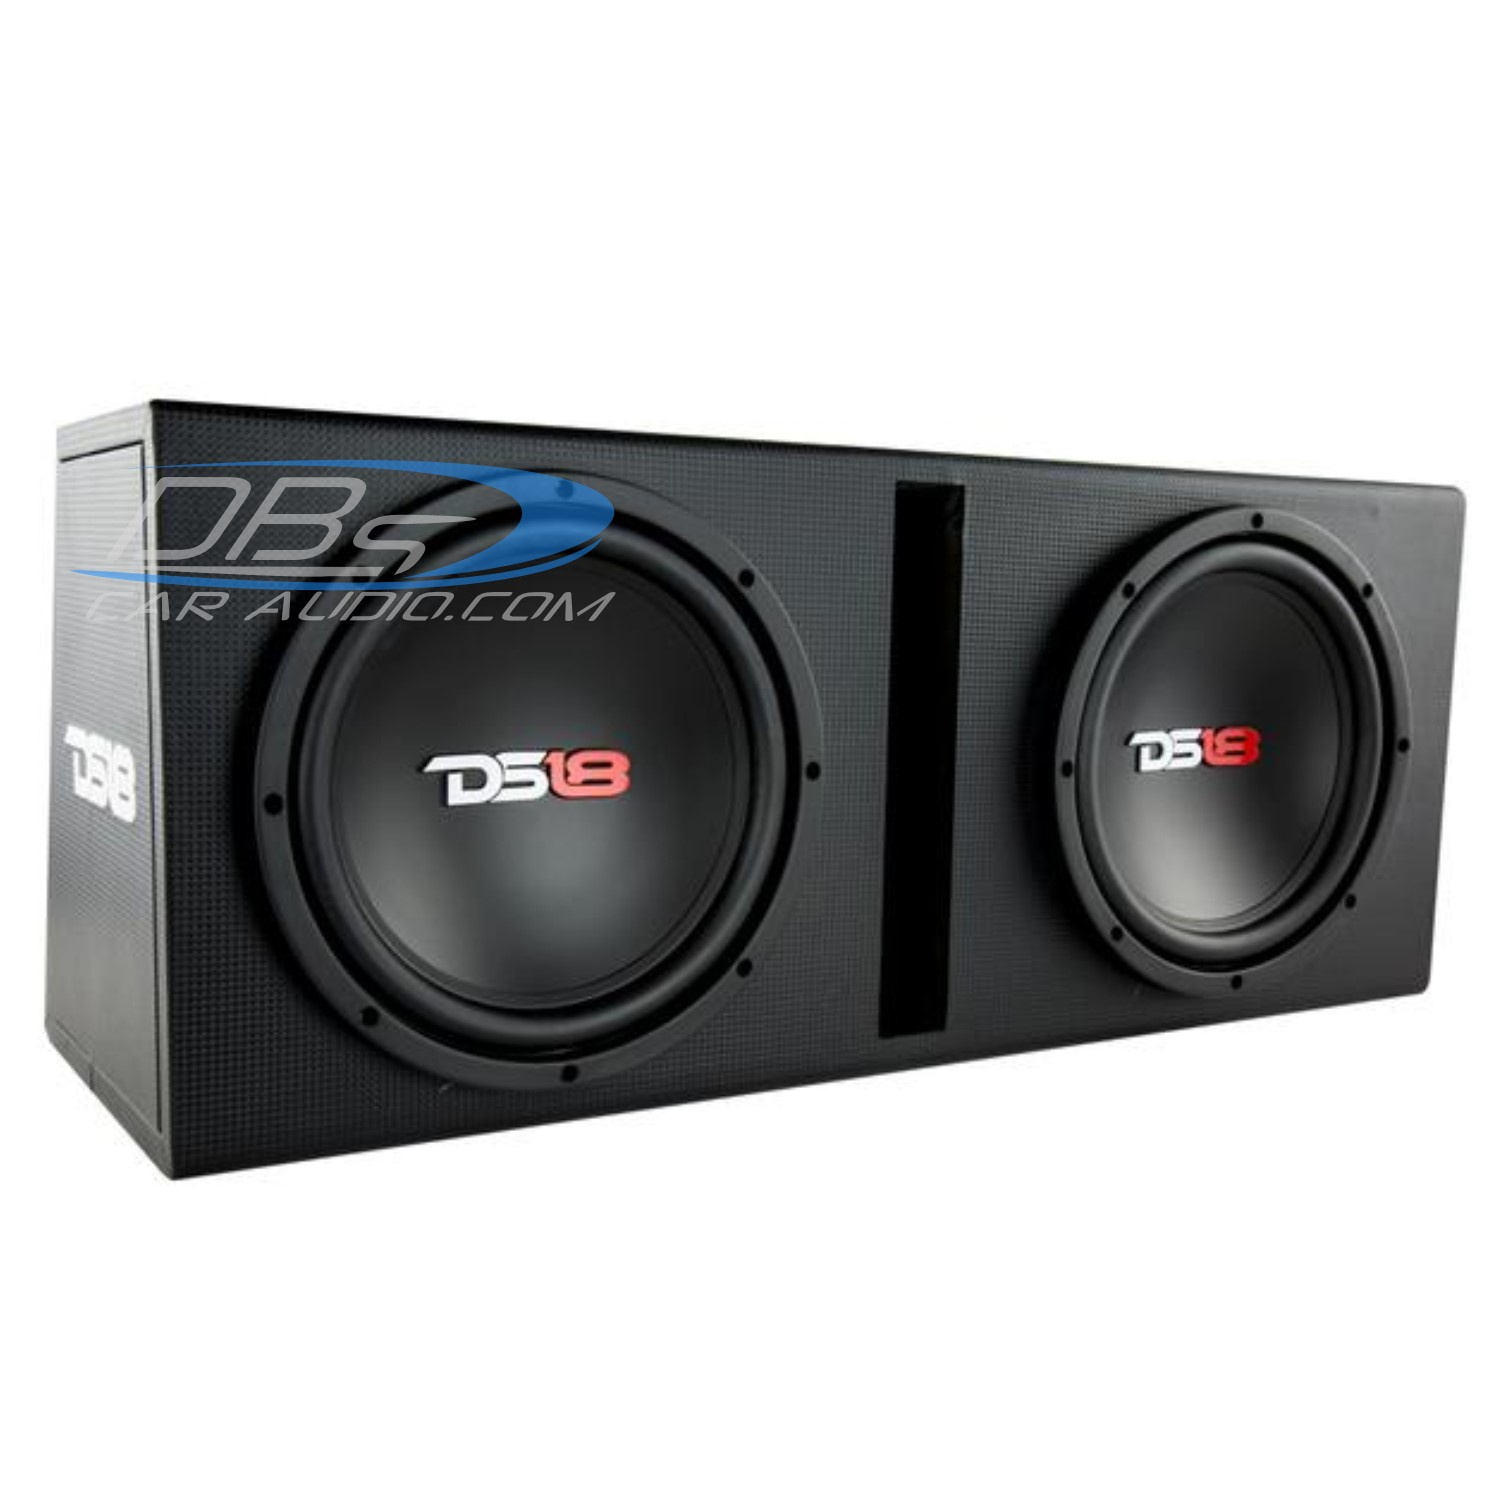 Ds18 Bpx210a Dual 10 Subwoofer Bass Package Includes Built In 1200w Sub And Amp Wiring Kit Quick View